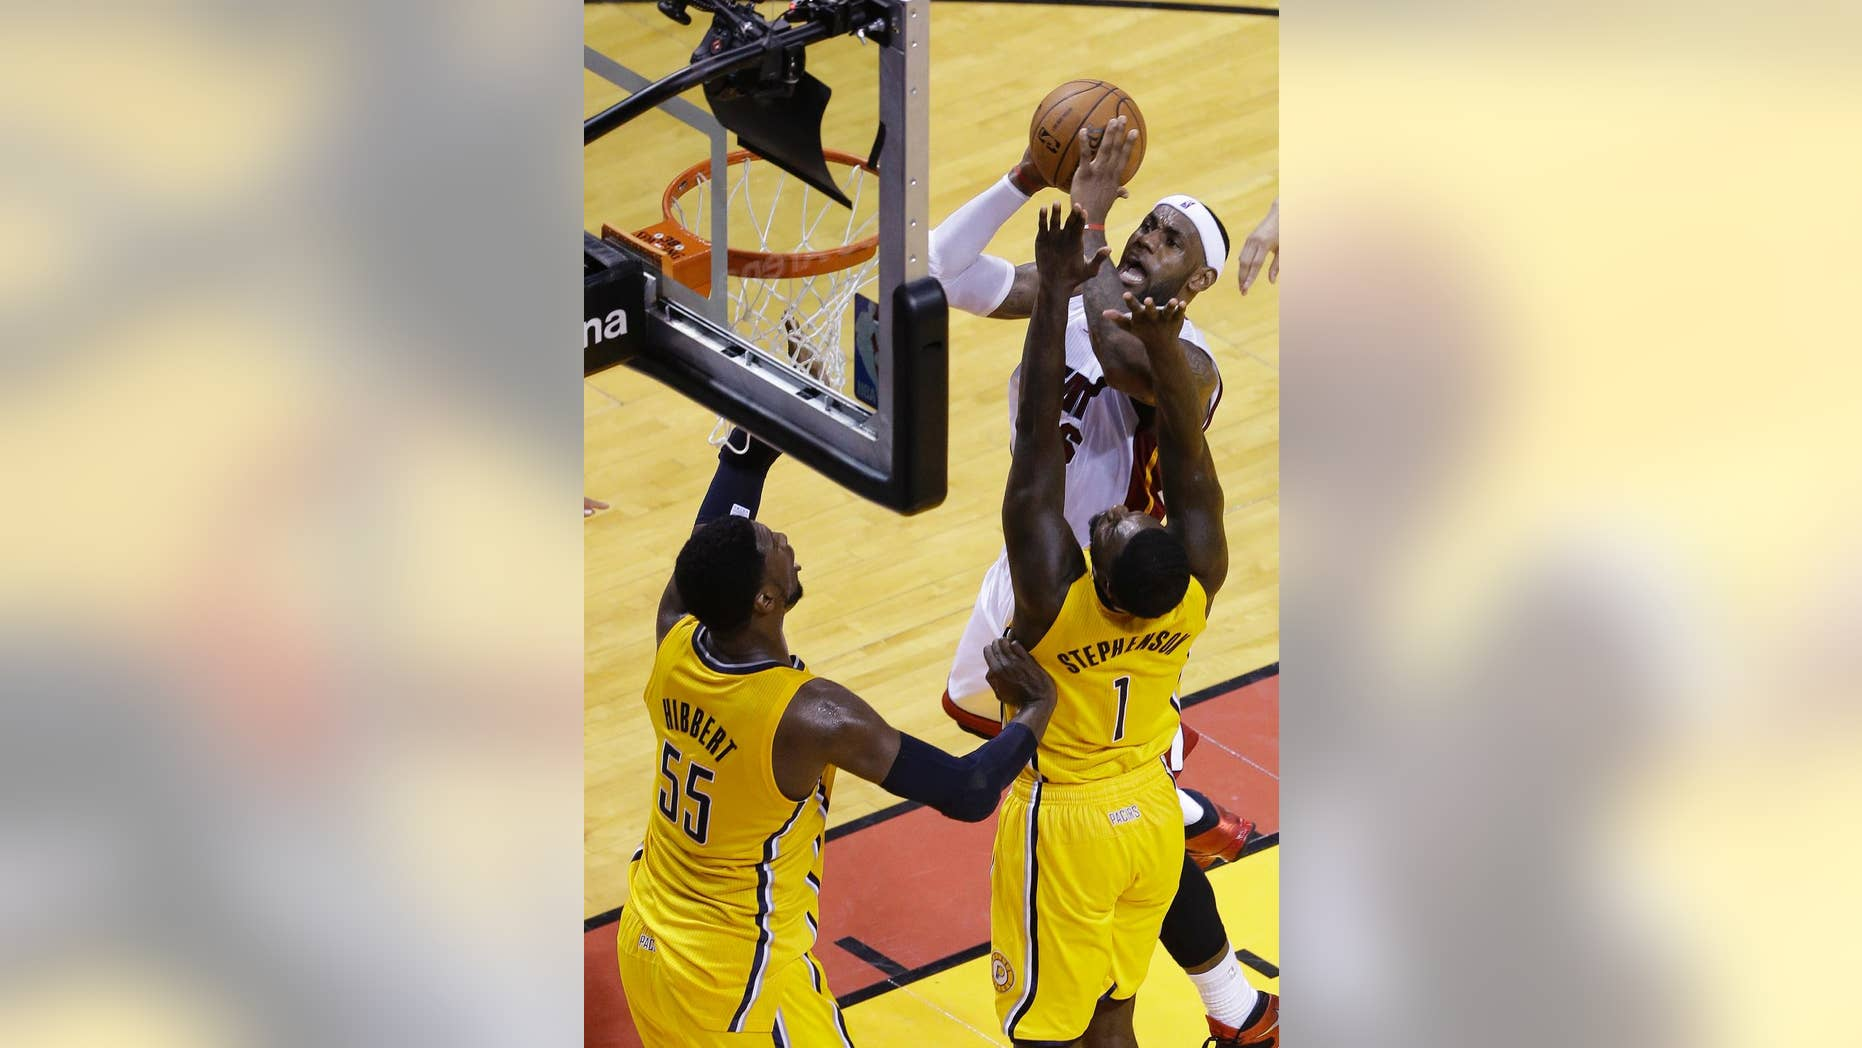 Miami Heat forward LeBron James (6) drives to the basket against Indiana Pacers guard Lance Stephenson (1) and center Roy Hibbert (55) during the first half of Game 3 in the NBA basketball Eastern Conference playoff series, Saturday, May 24, 2014, in Miami. (AP Photo/Wilfredo Lee)